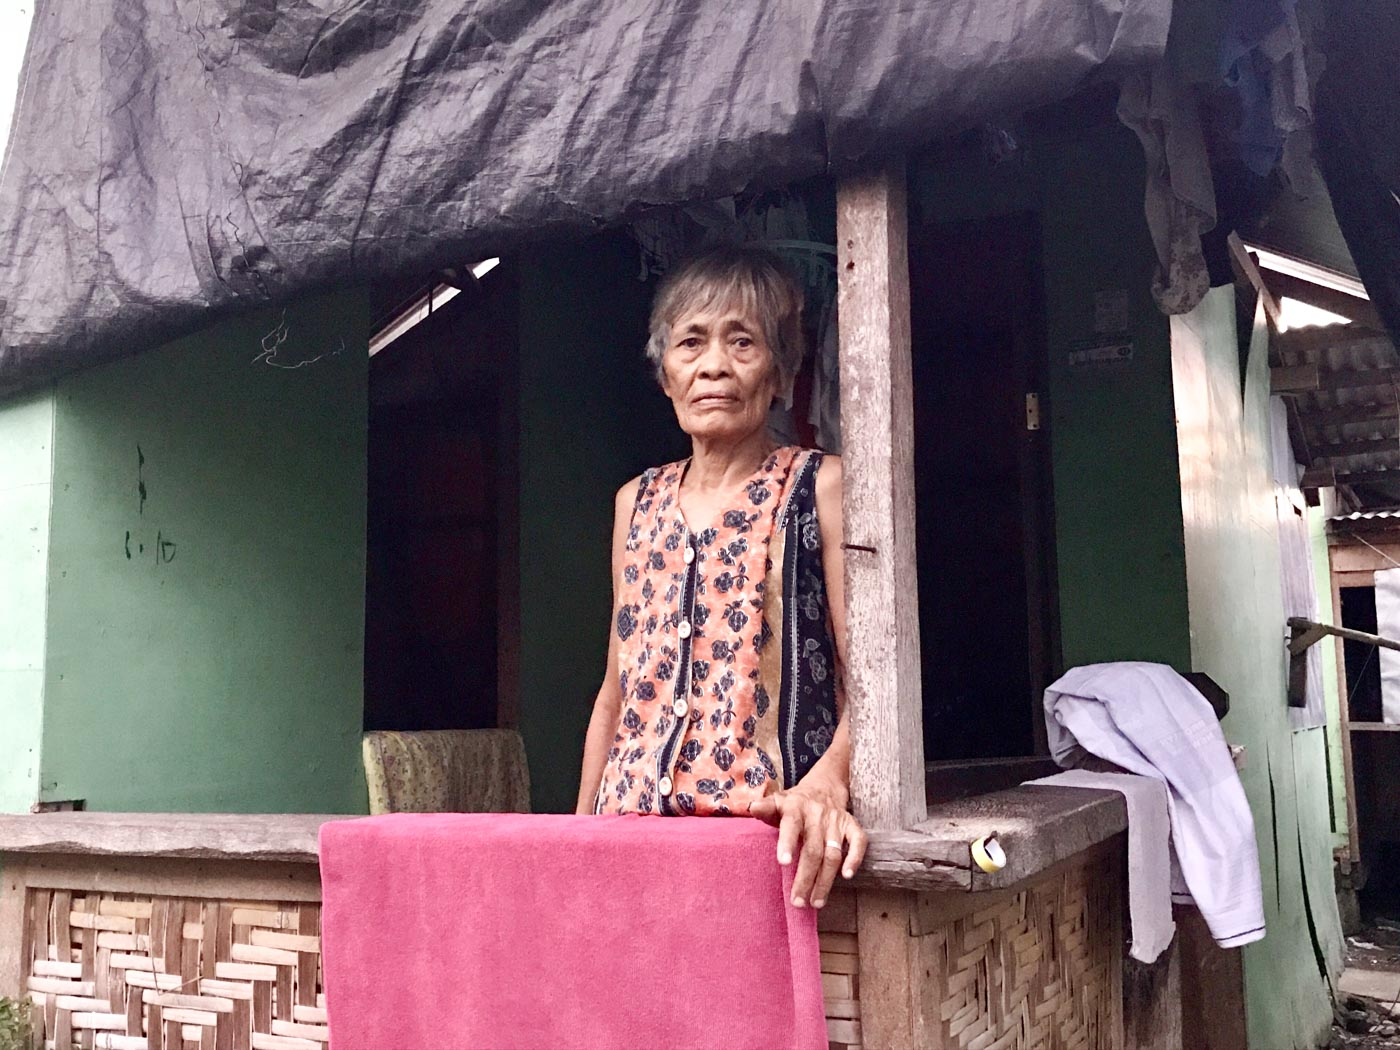 WAITING. Priscilla Mia, 73, lost her daughter and her grandchild to Yolanda. She lives with her other grandchildren in a bunkhouse in Costa Brava, San Jose. She feels neglected because her promised permanent house in the north of Tacloban remains unfulfilled. Photo by Jene-Anne Pangue